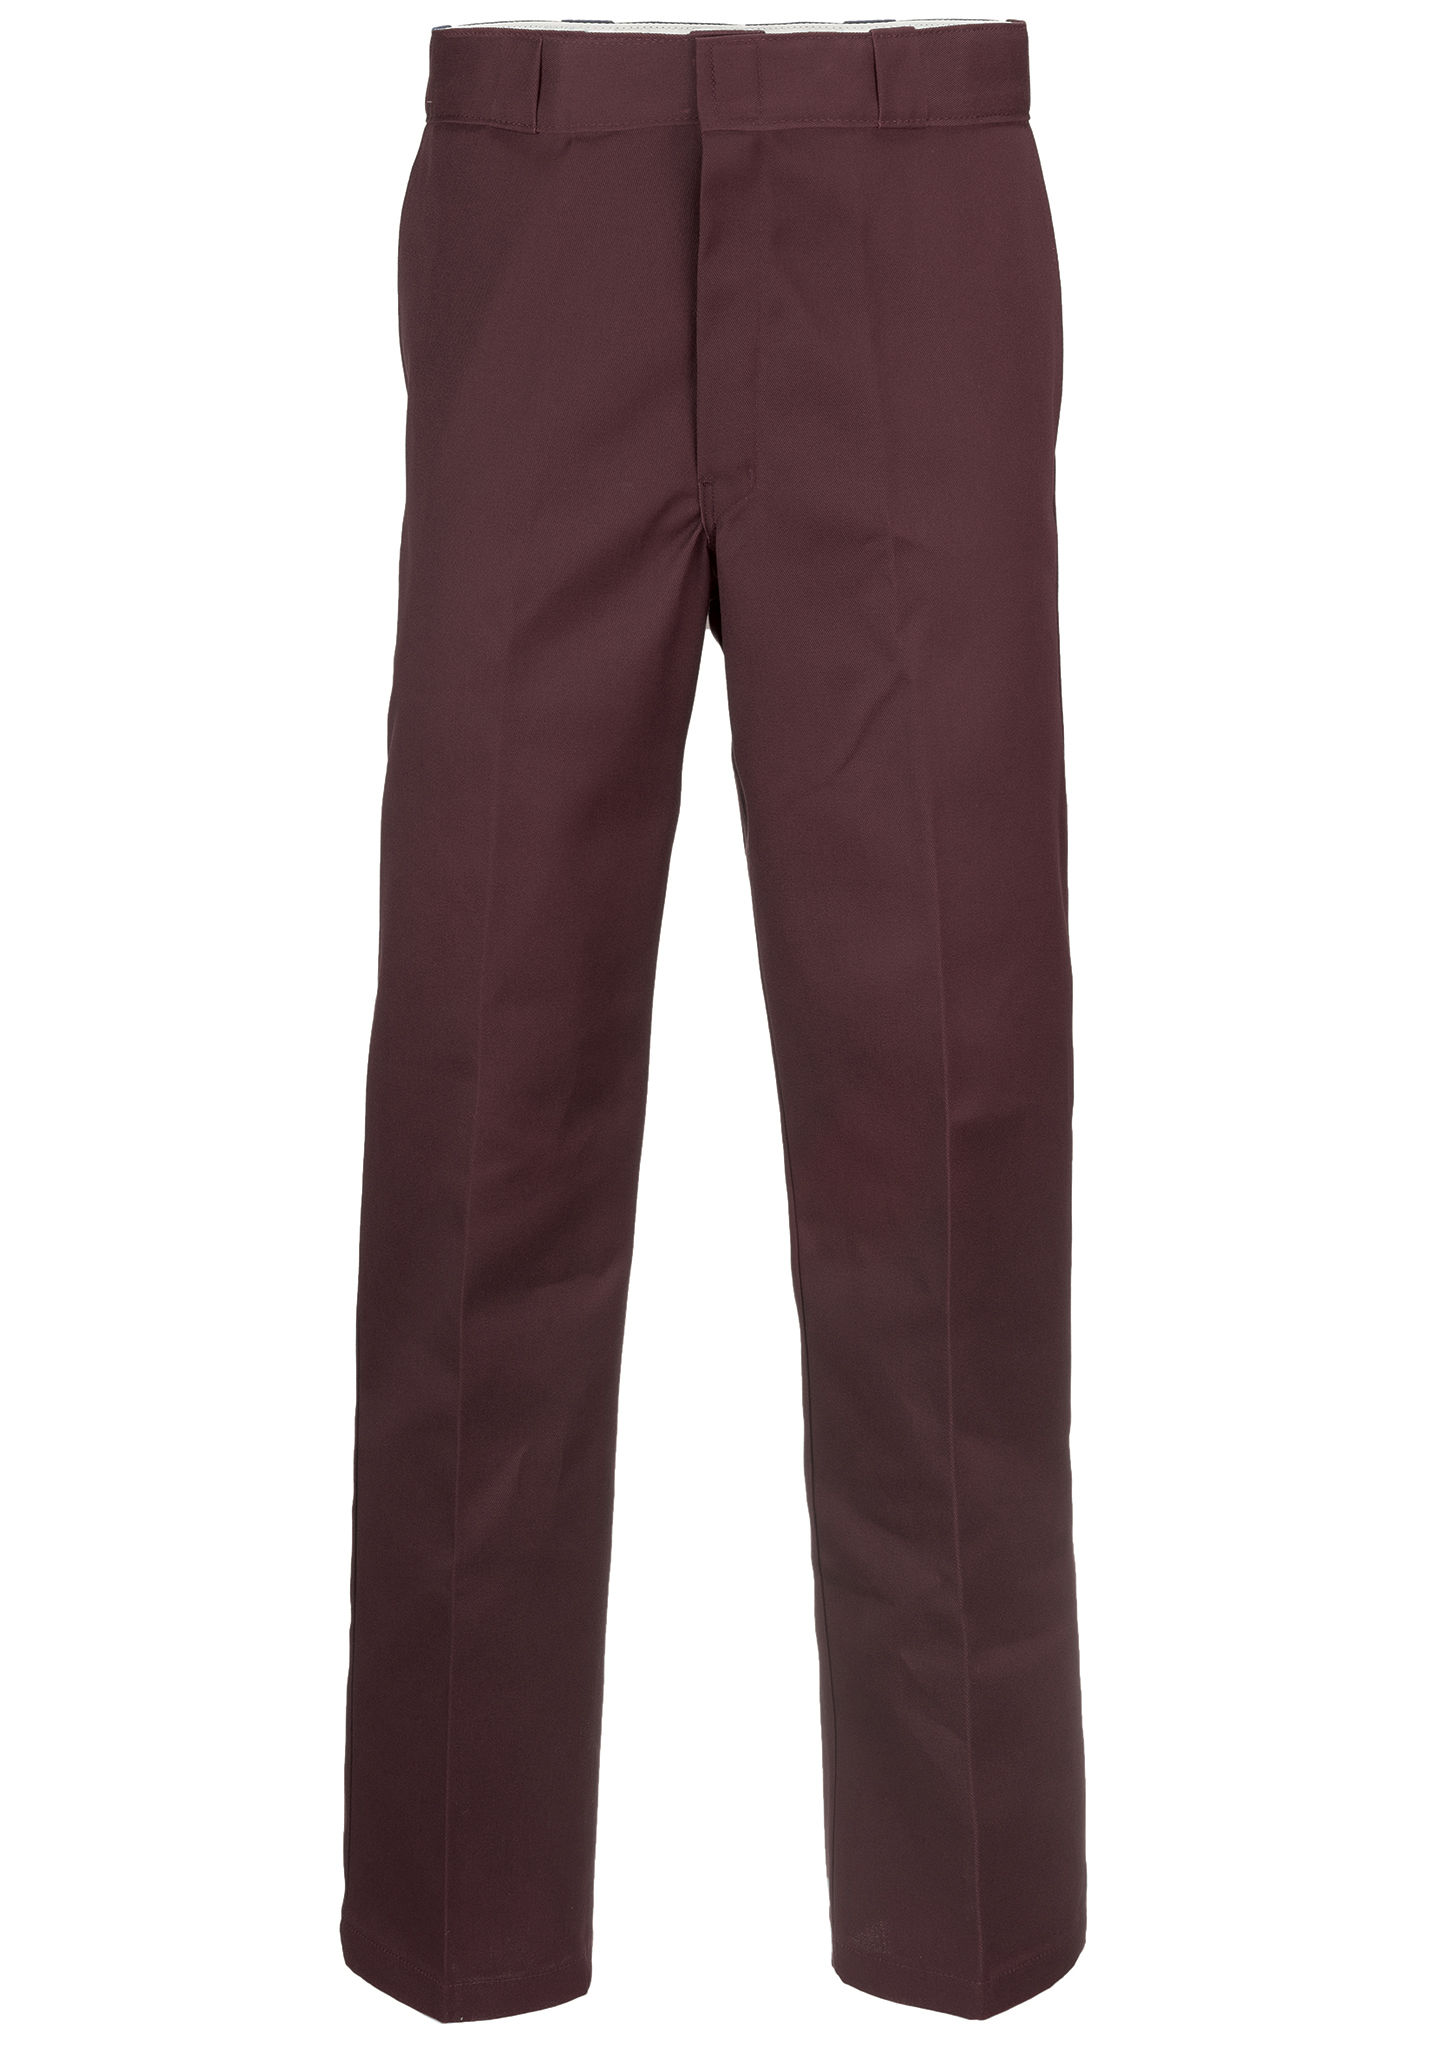 d8e2510dfcb Dickies Original 874 Work - Pantalon en tissu pour Homme - Rouge - Planet  Sports